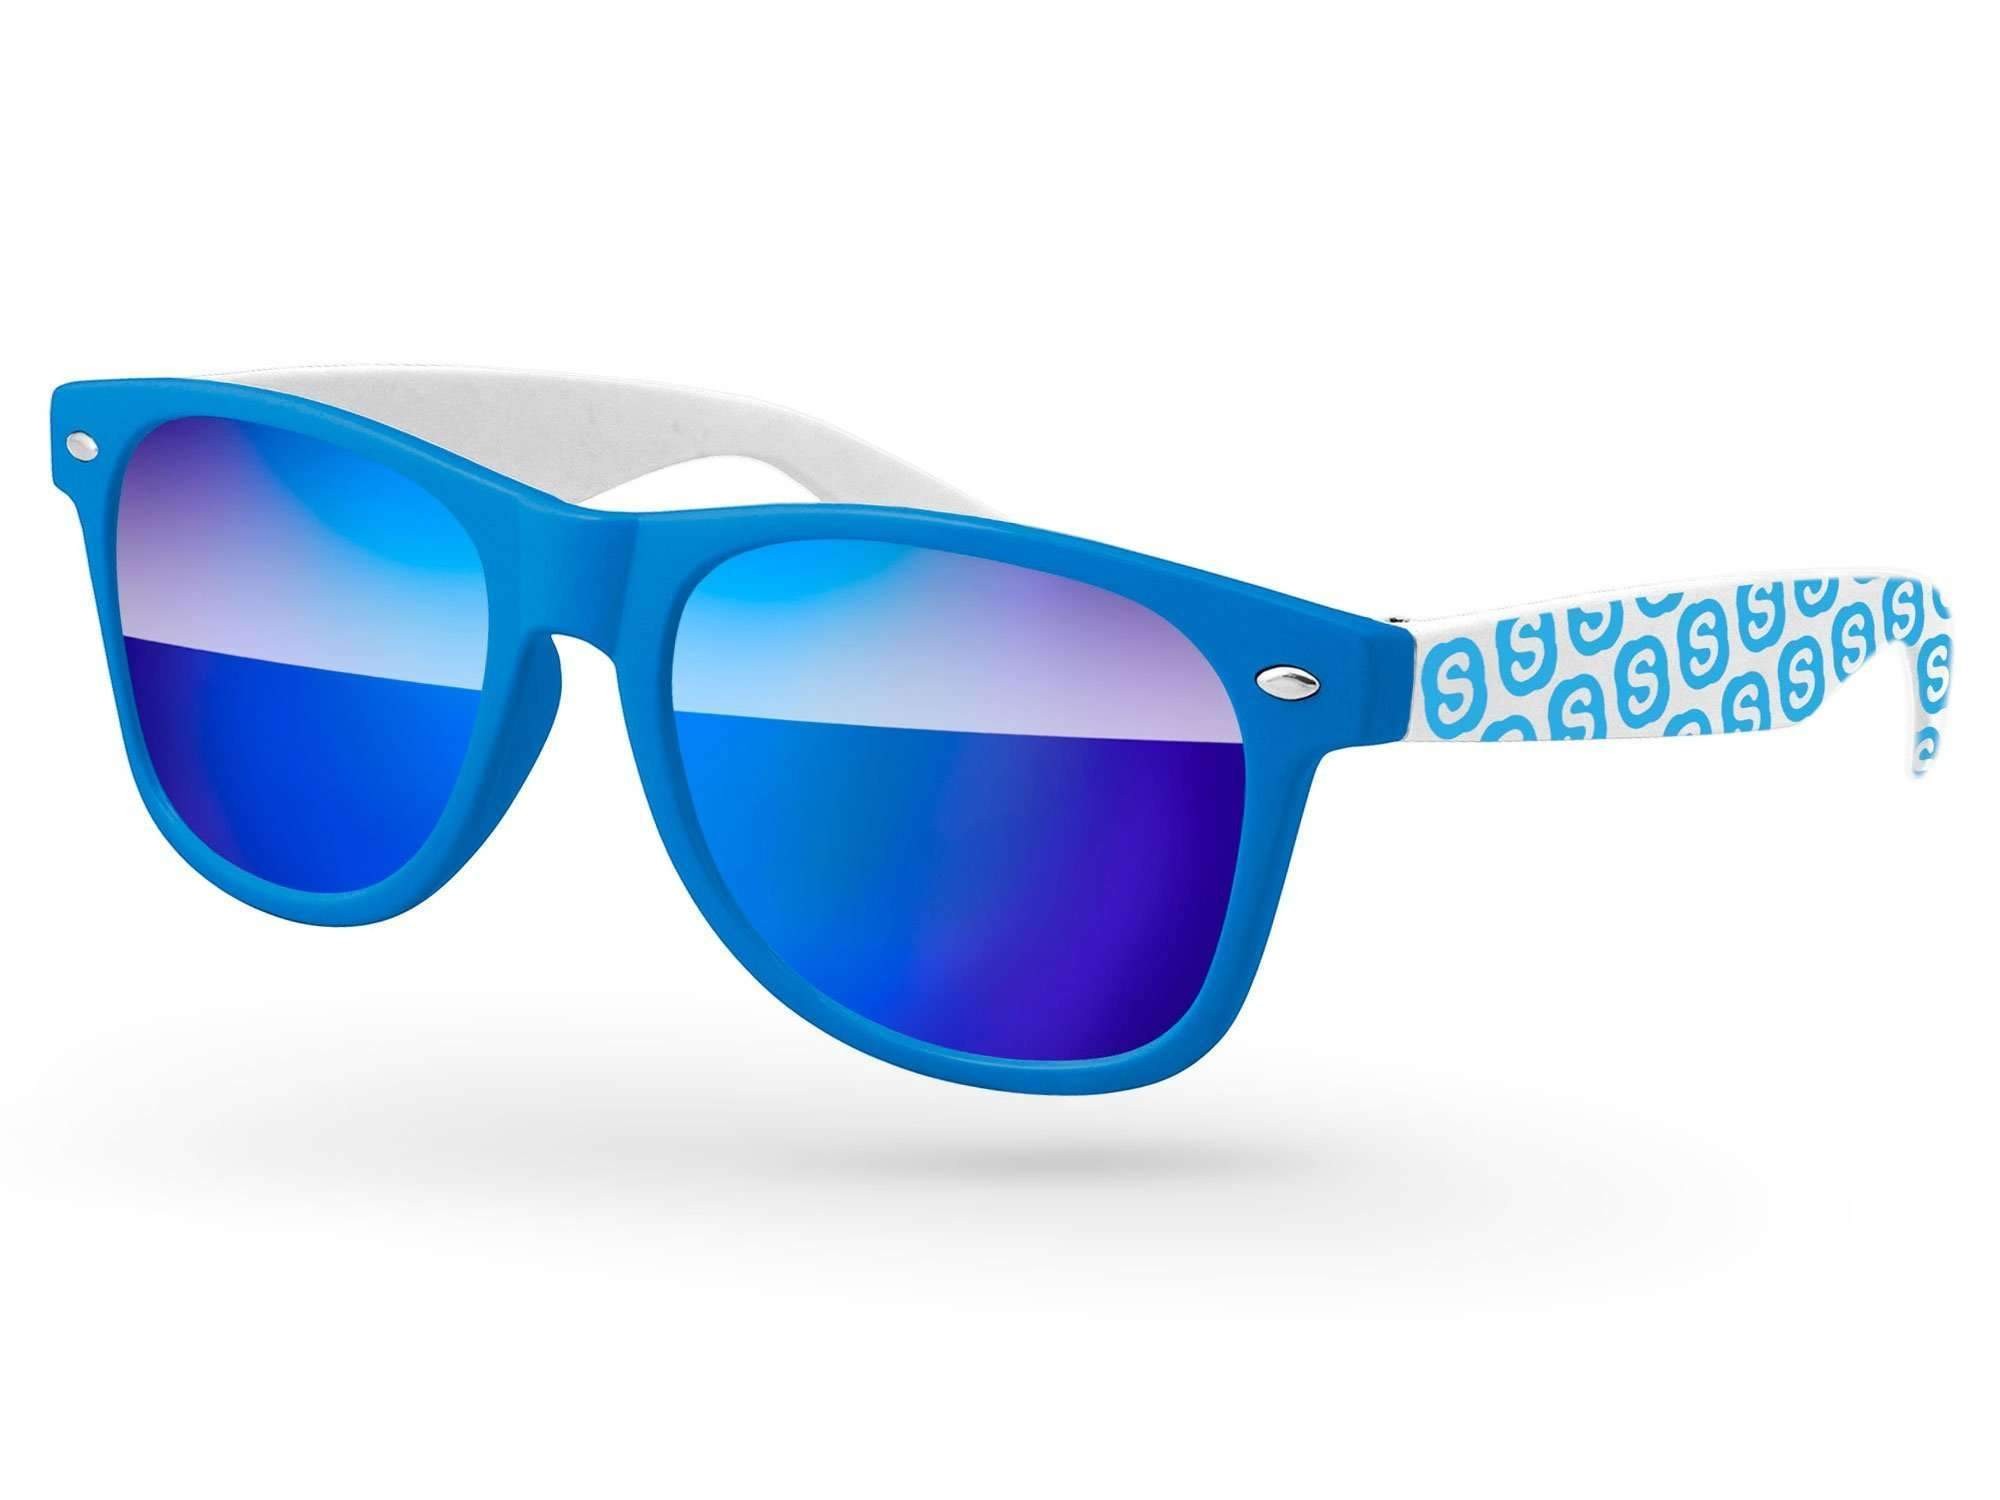 RM032 - 2-tone Retro Mirror Promotional Sunglasses w/ 1-color extended temple imprint